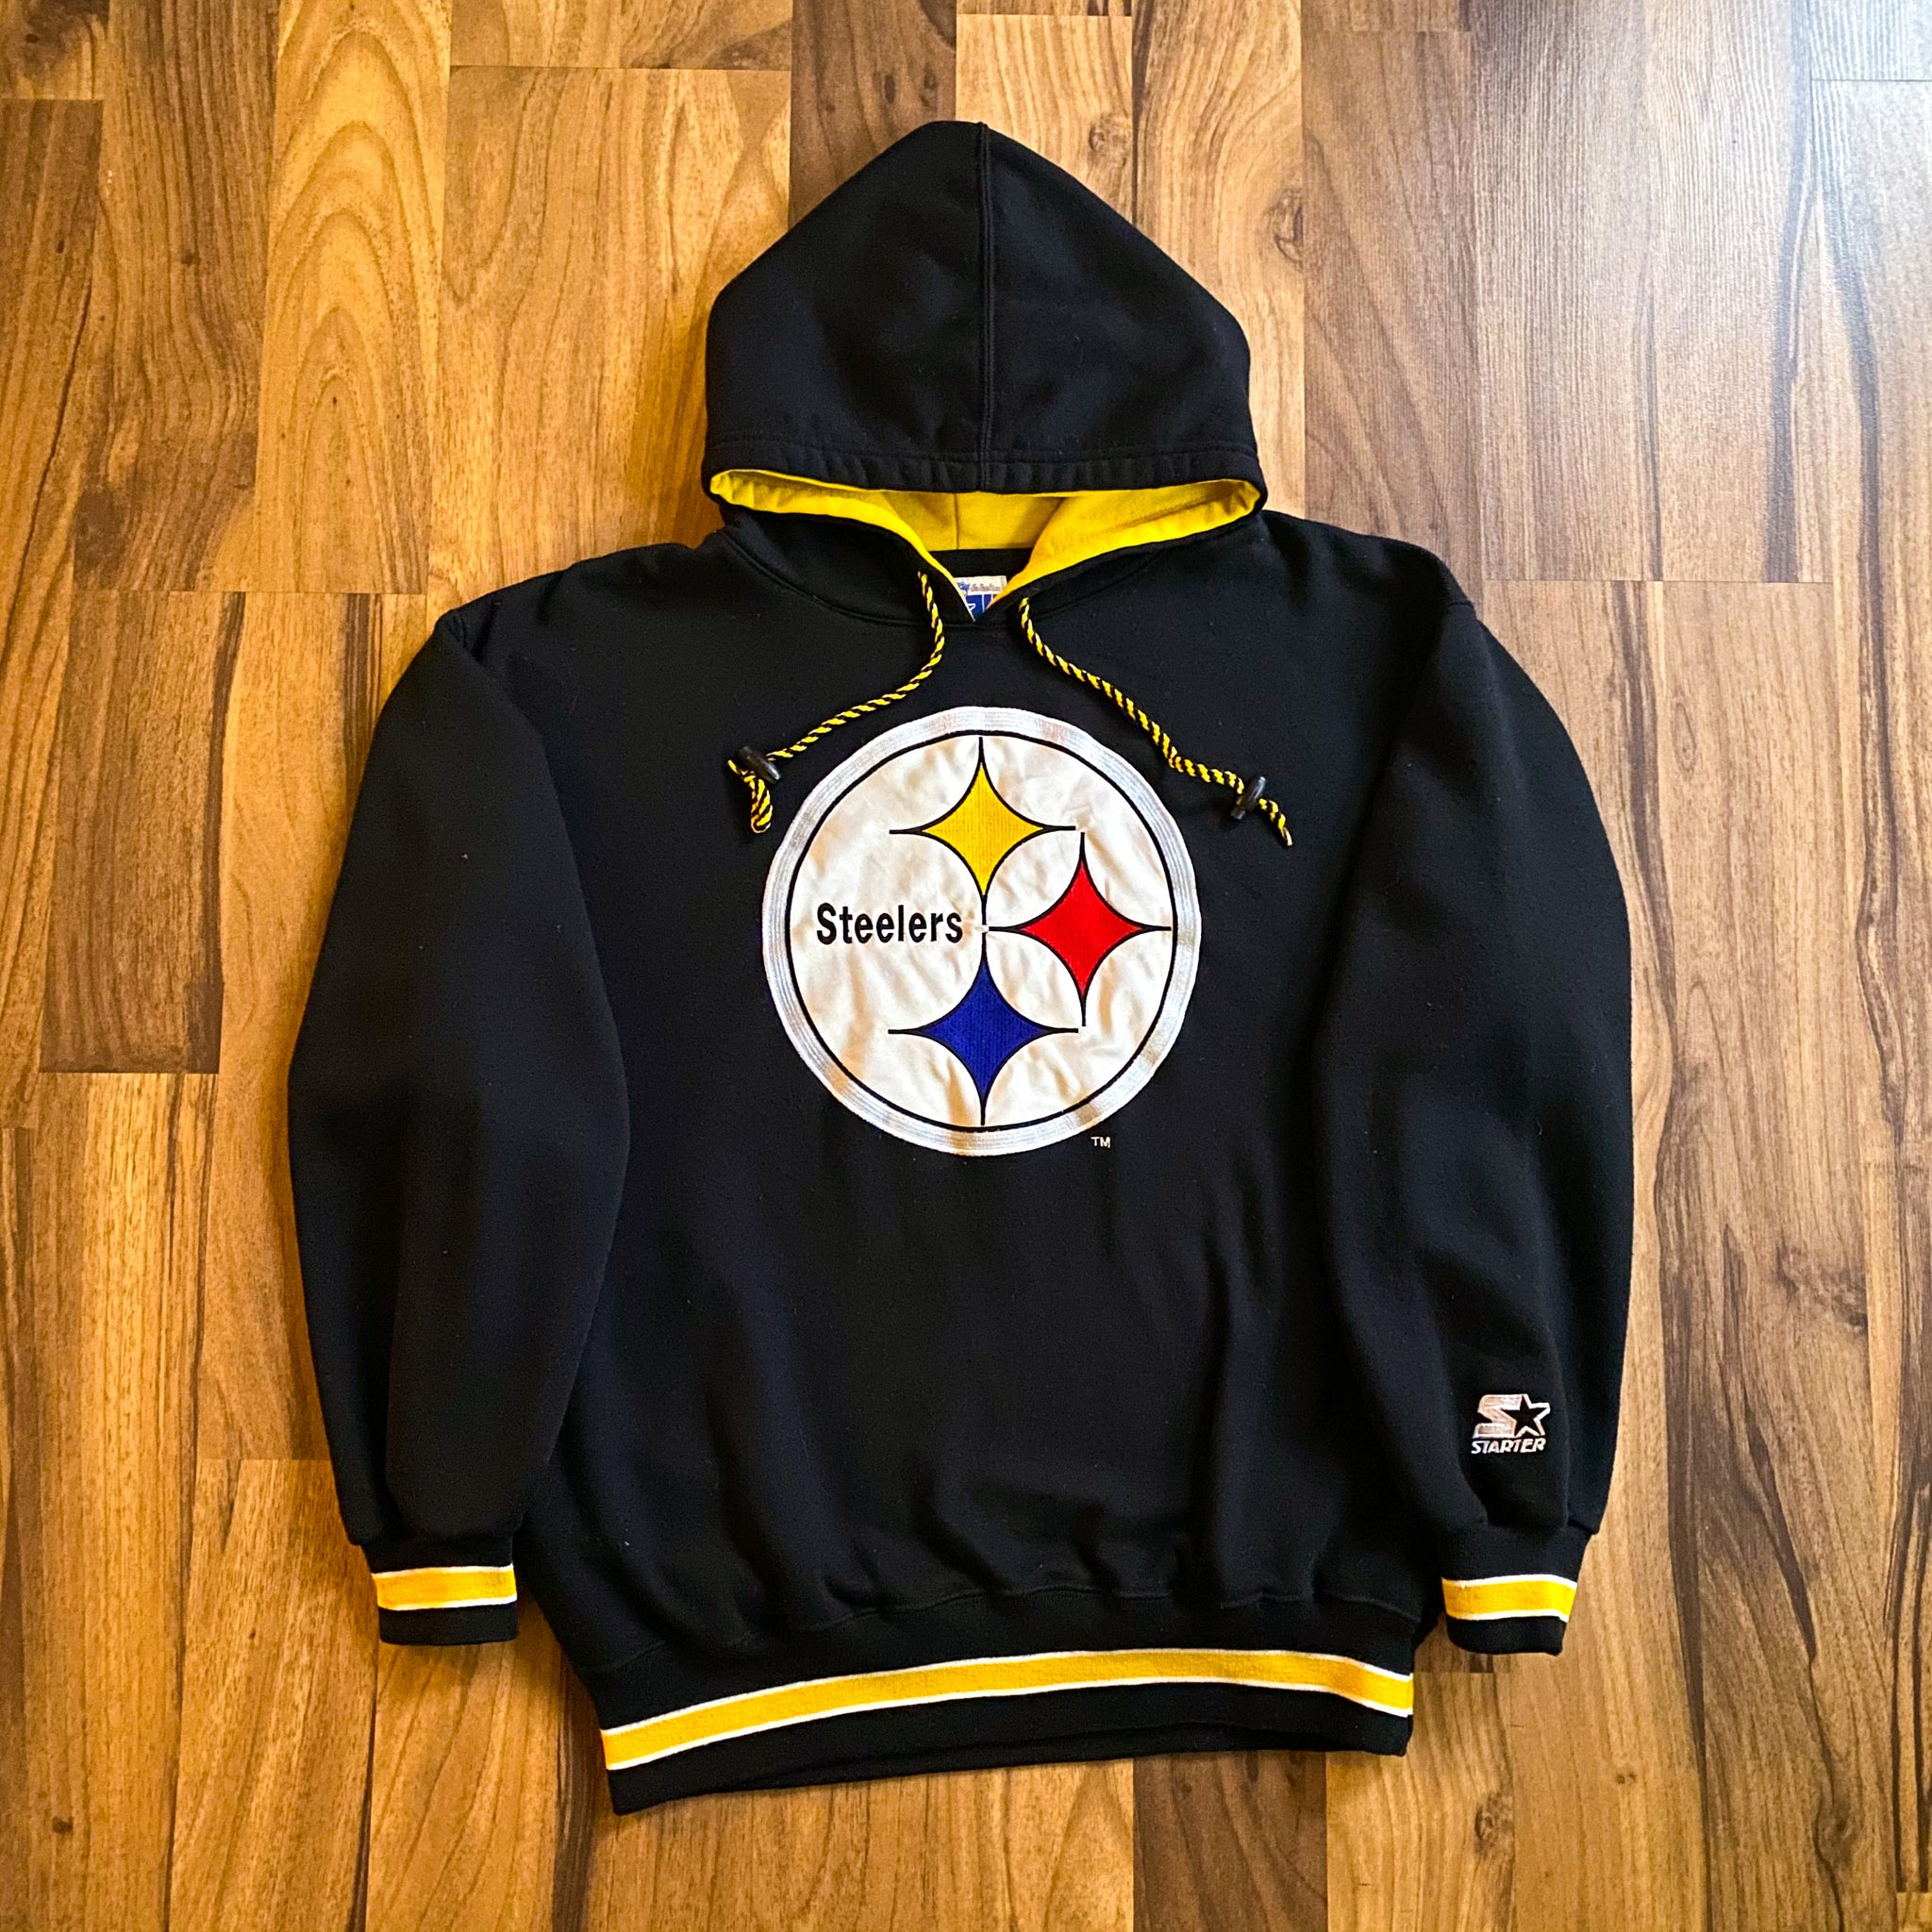 VINTAGE PITTSBURGH STEELERS STARTER NFL BIG PATCH HOODED SWEATSHIRT